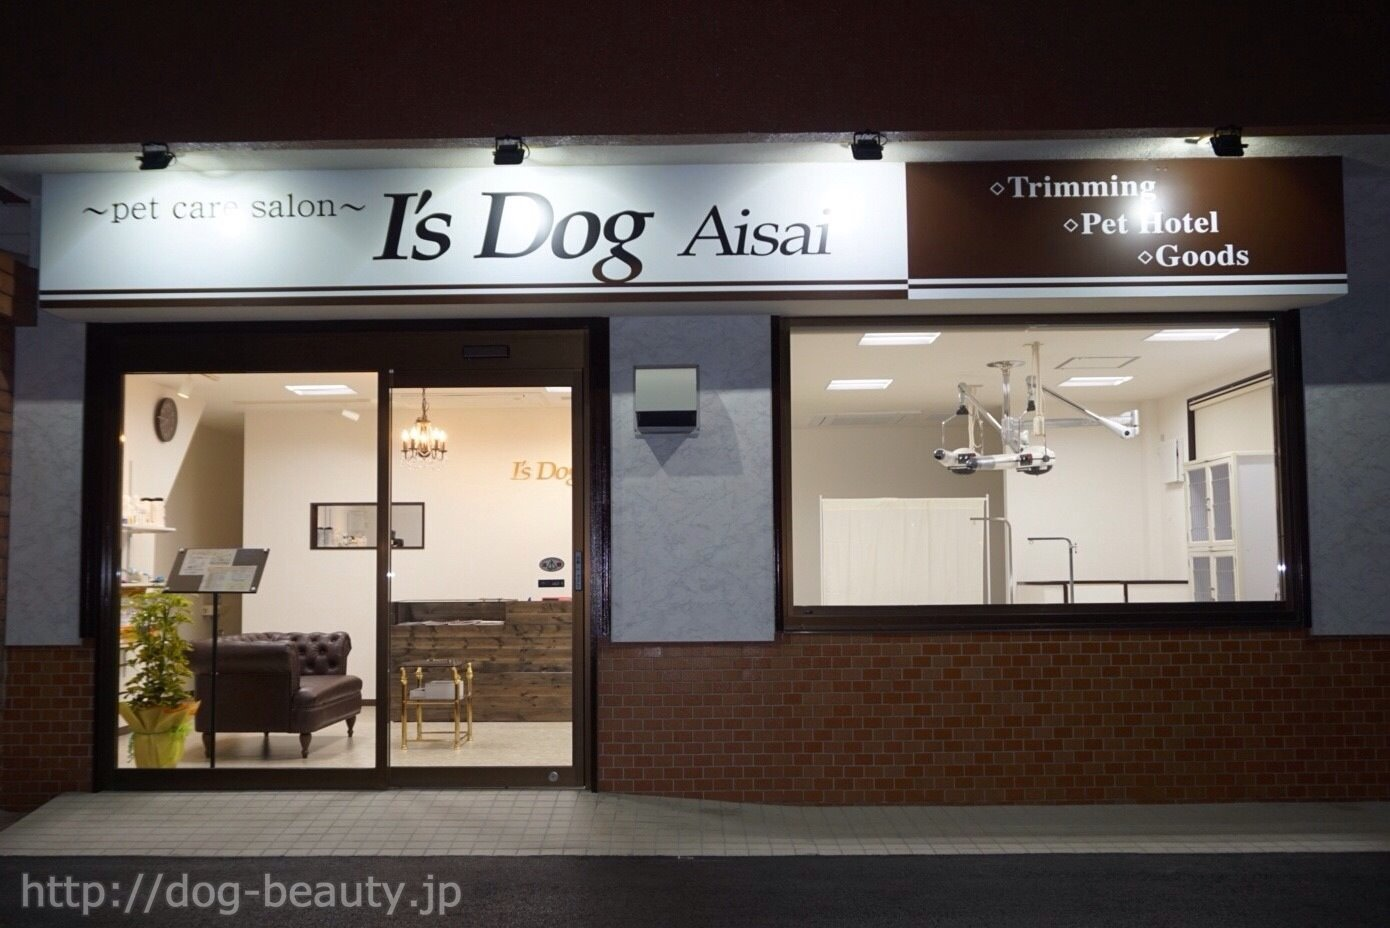 〜pet care salon〜  I's  Dog  Aisai